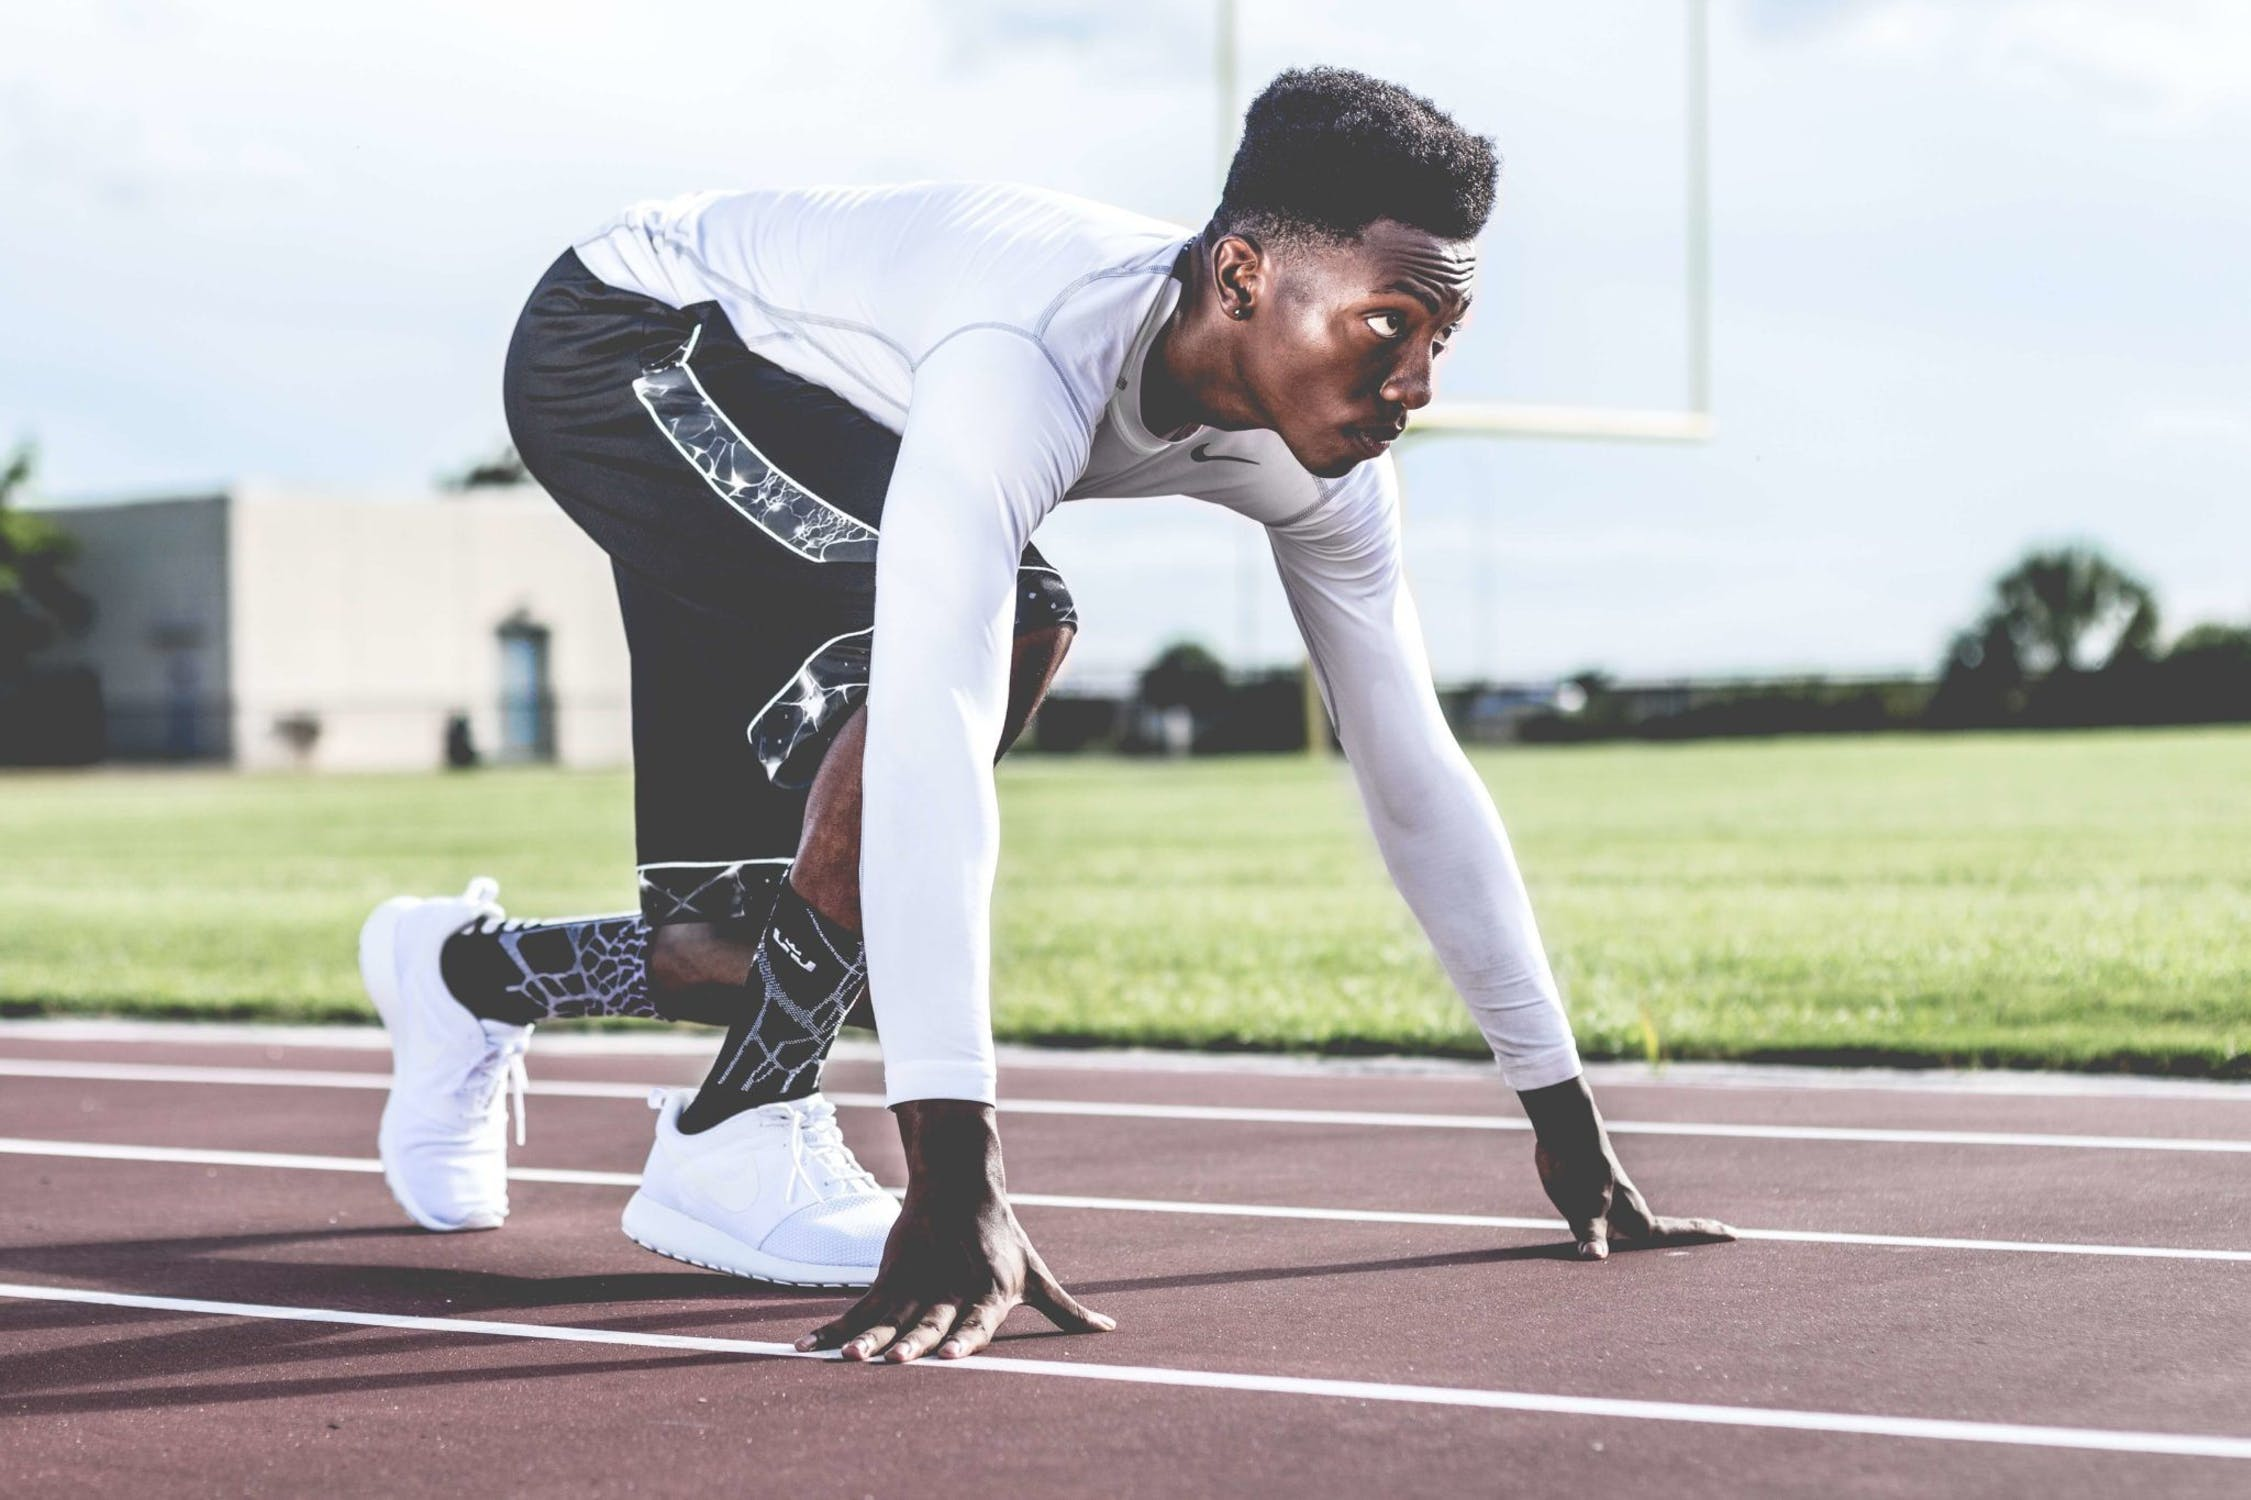 Stock photo of African American athlete at the starting line of a race.